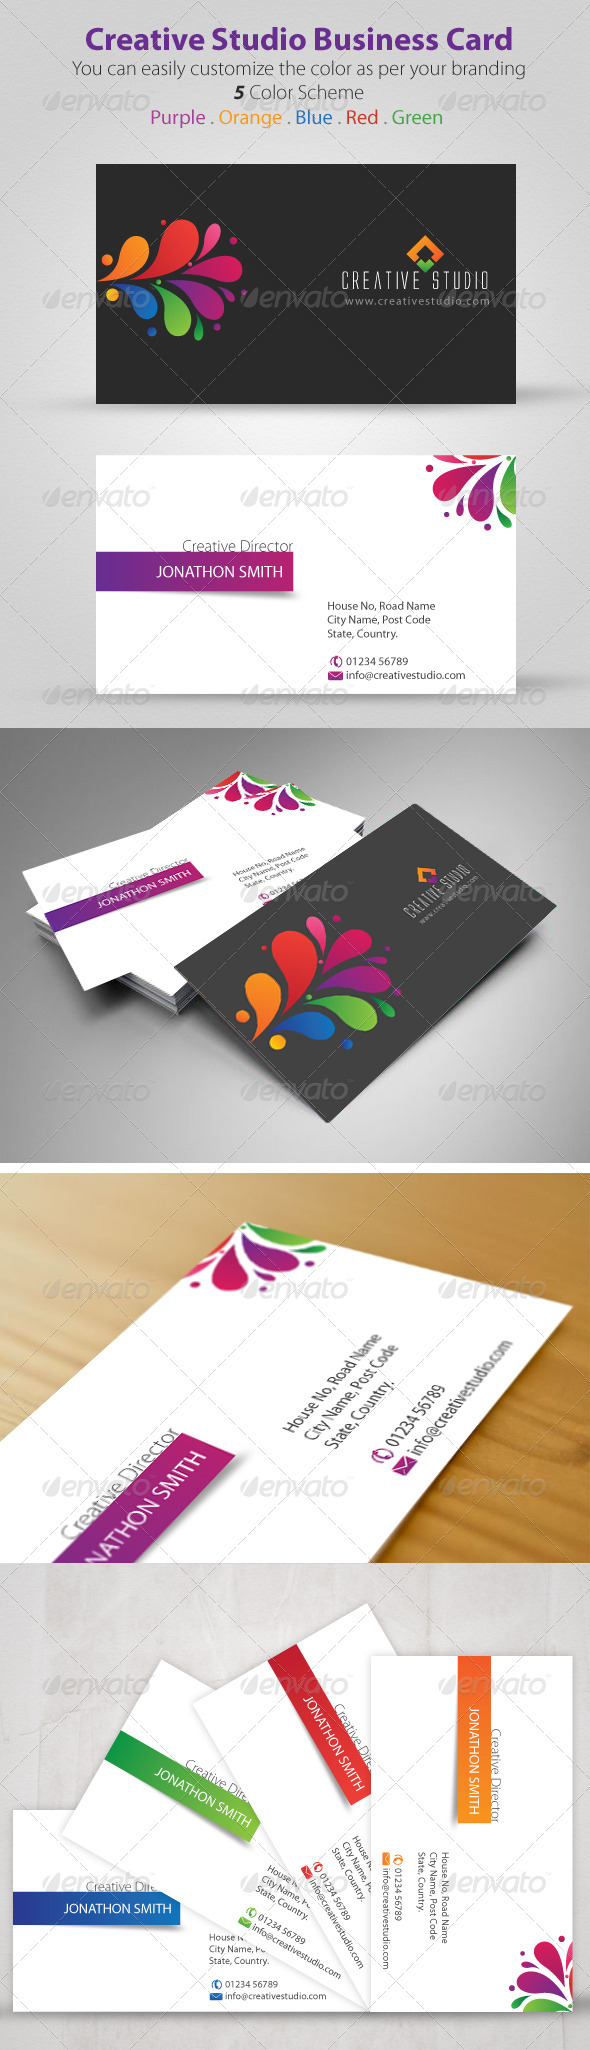 GraphicRiver Creative Studio Business Card 3790582